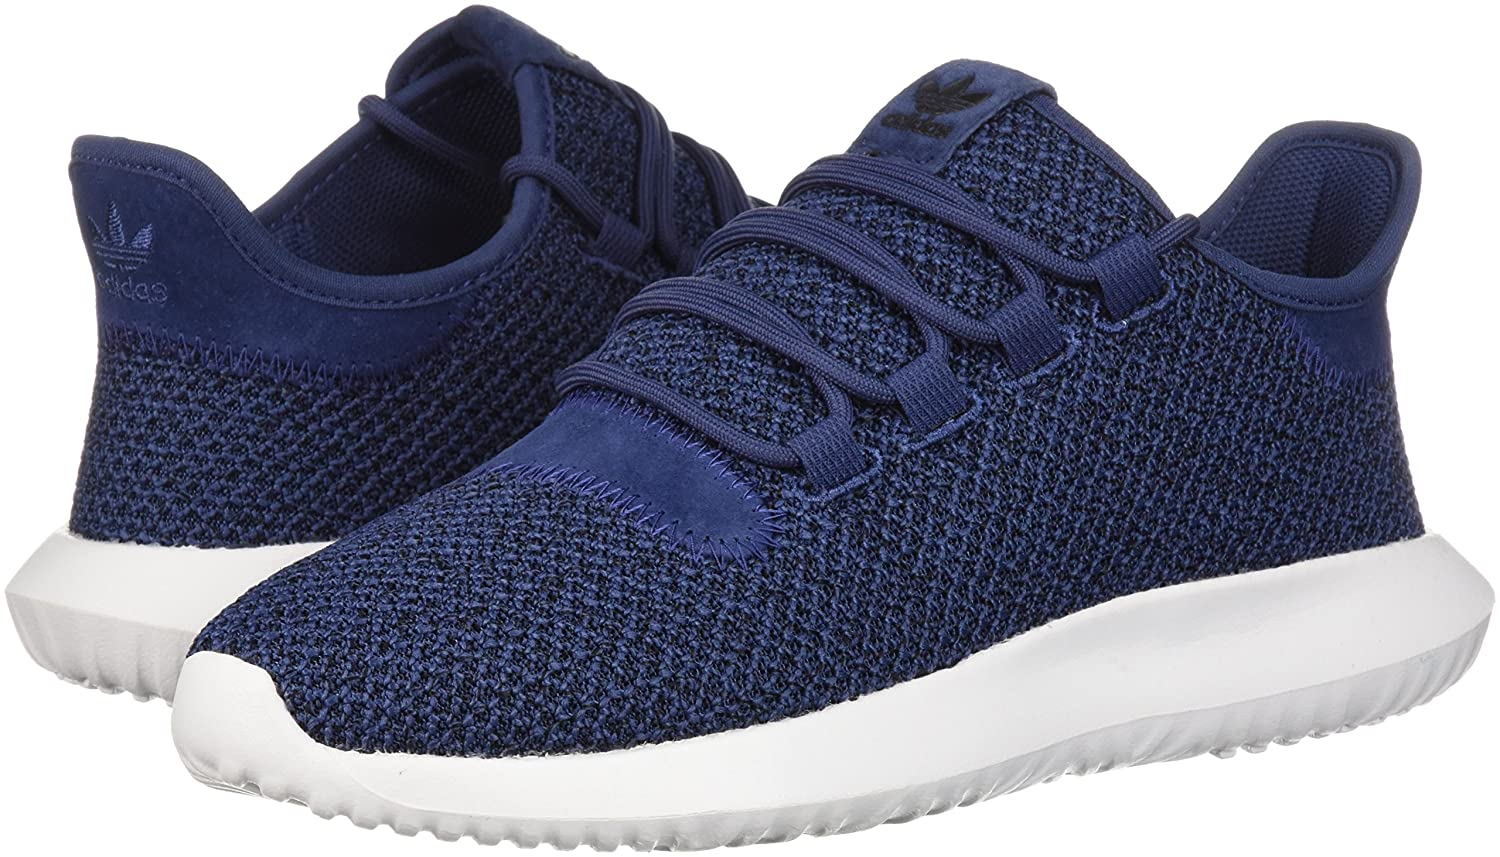 adidas Originals Women's Tubular Shadow W Fashion Sneaker B0711R9T2L Indigo/White 5 B(M) US|Noble Indigo/Noble Indigo/White B0711R9T2L b4bac8